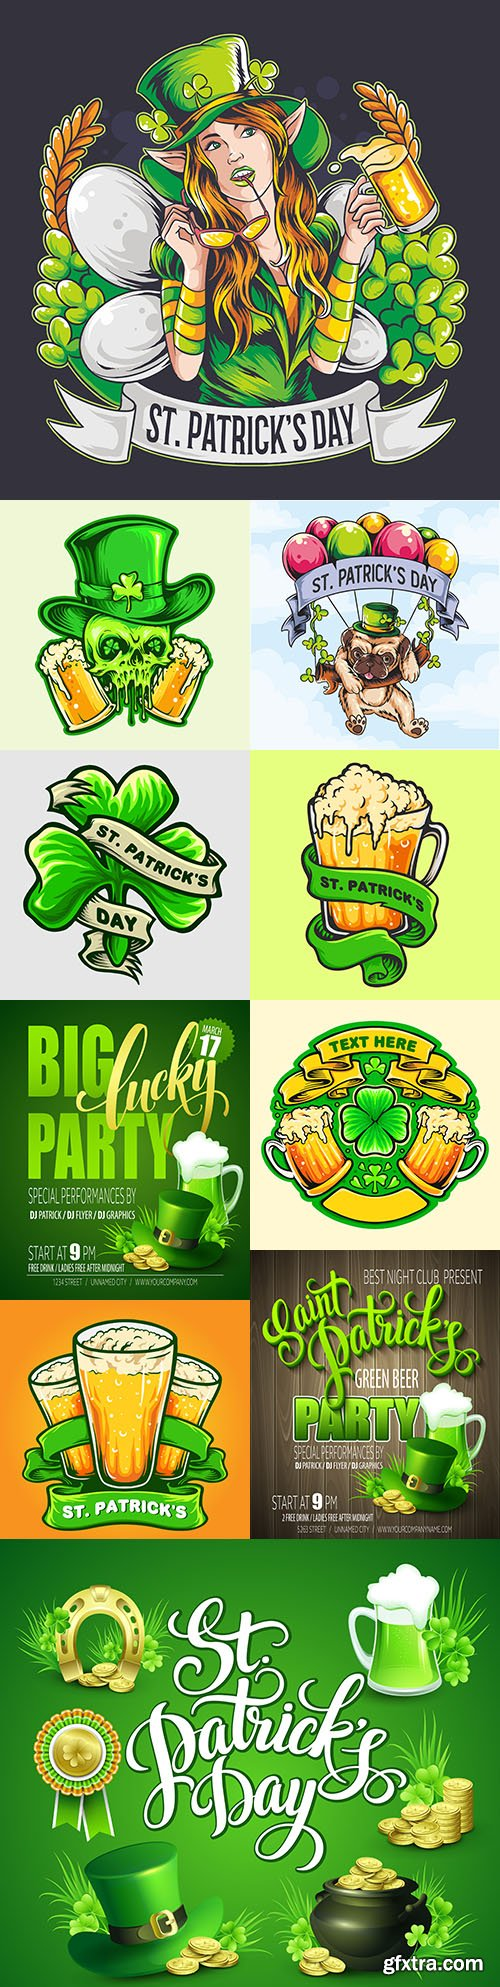 St. Patrick's Day party and design emblems illustrations 10